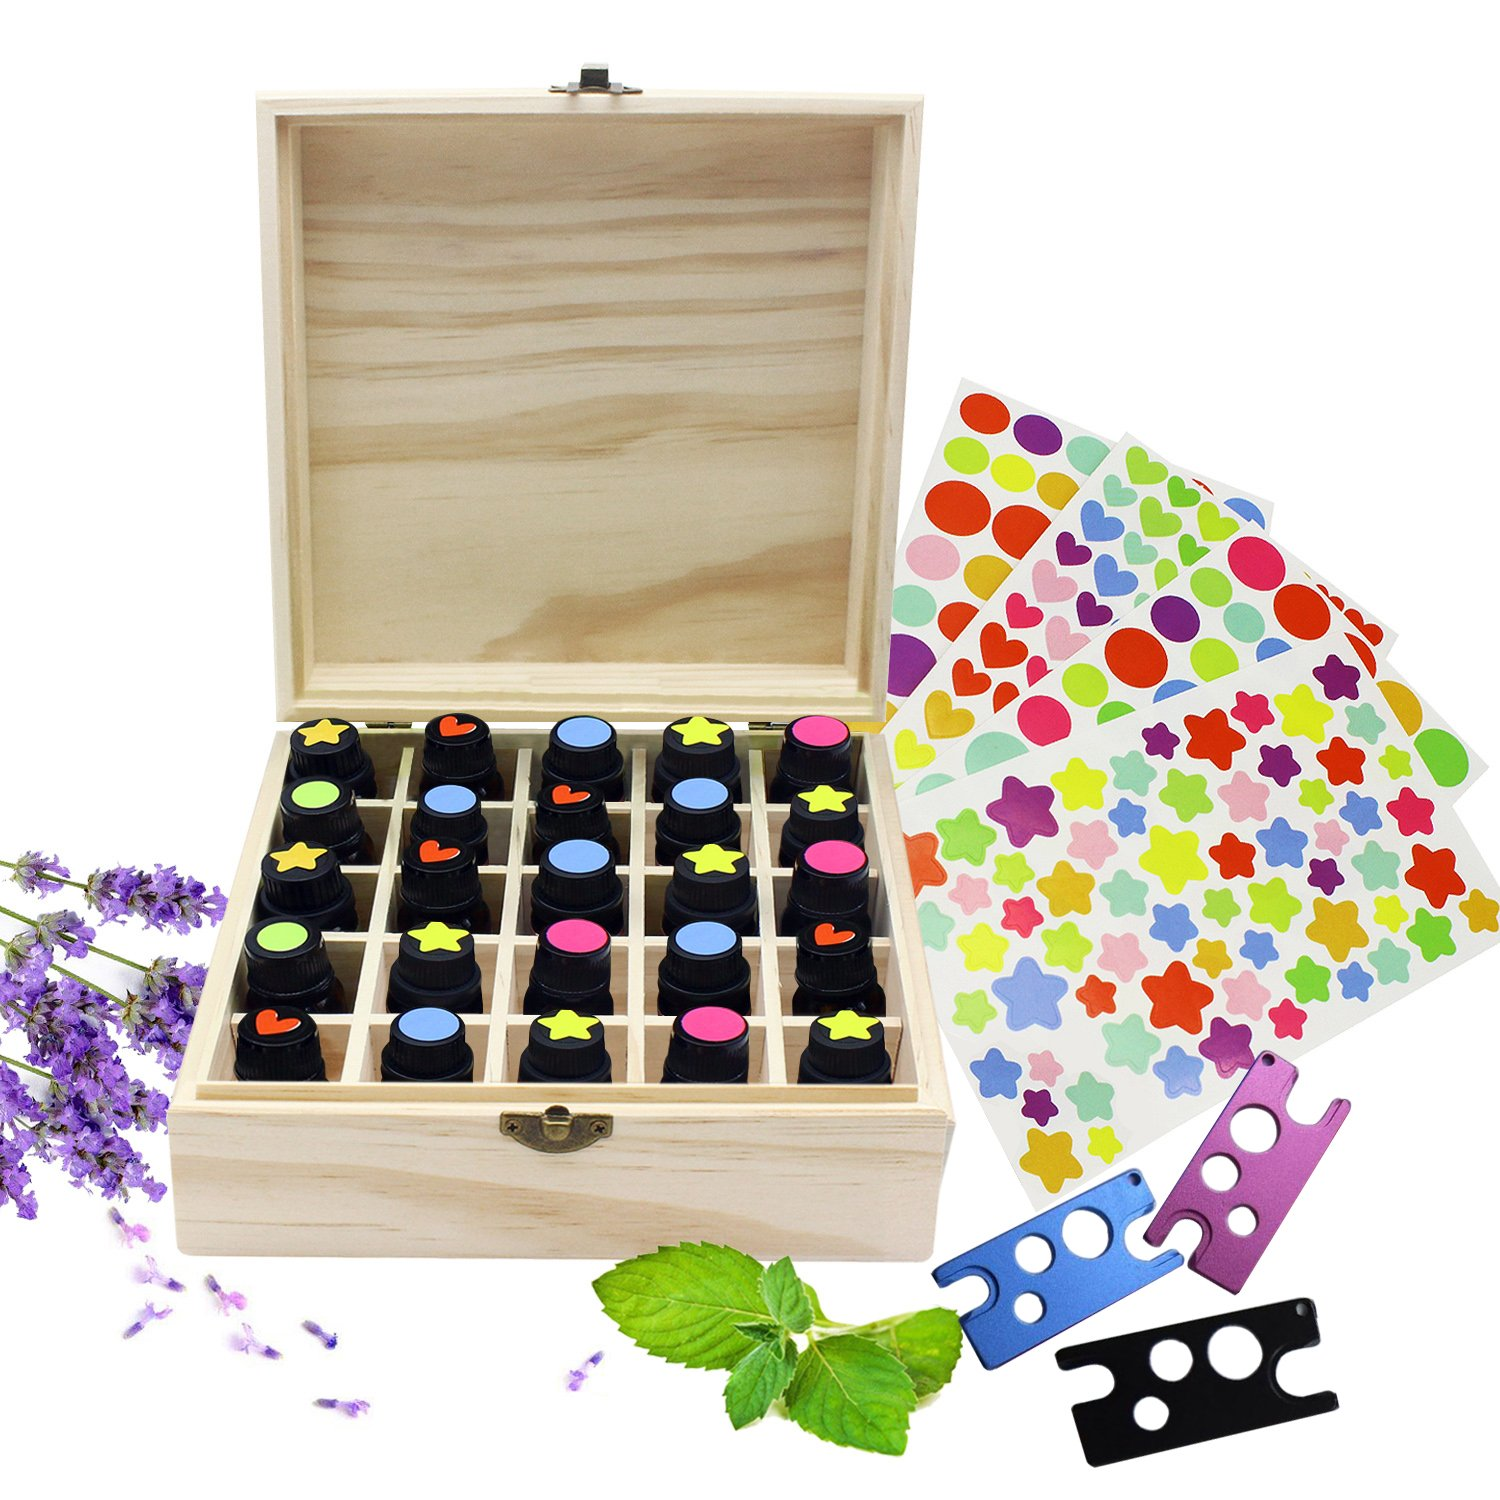 PURENJOY Essential Oil Wooden Storage Box Case, 25 Compartment Stores 5ml 10ml 15ml Essential Oils Bottles, Nail Polish Or Lipsticks, Includes 4 Stickers and 1 Essential Oil Bottle Opener